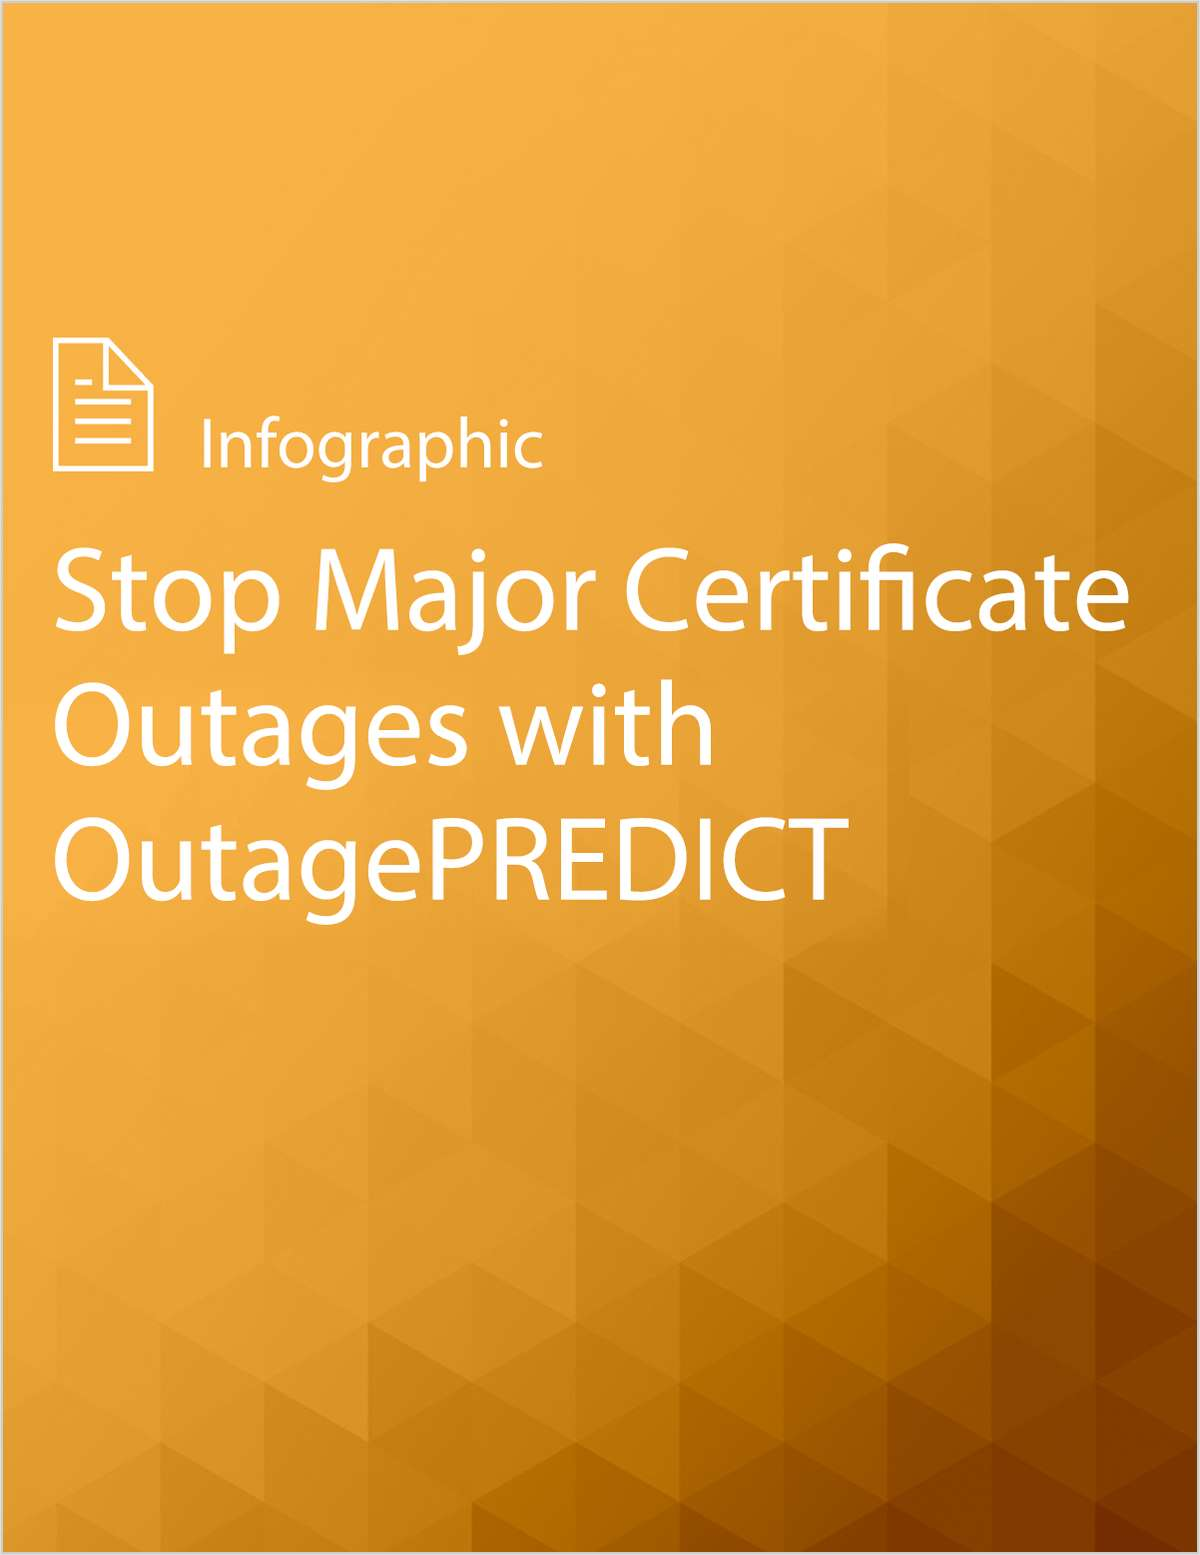 Stop Major Certificate Outages